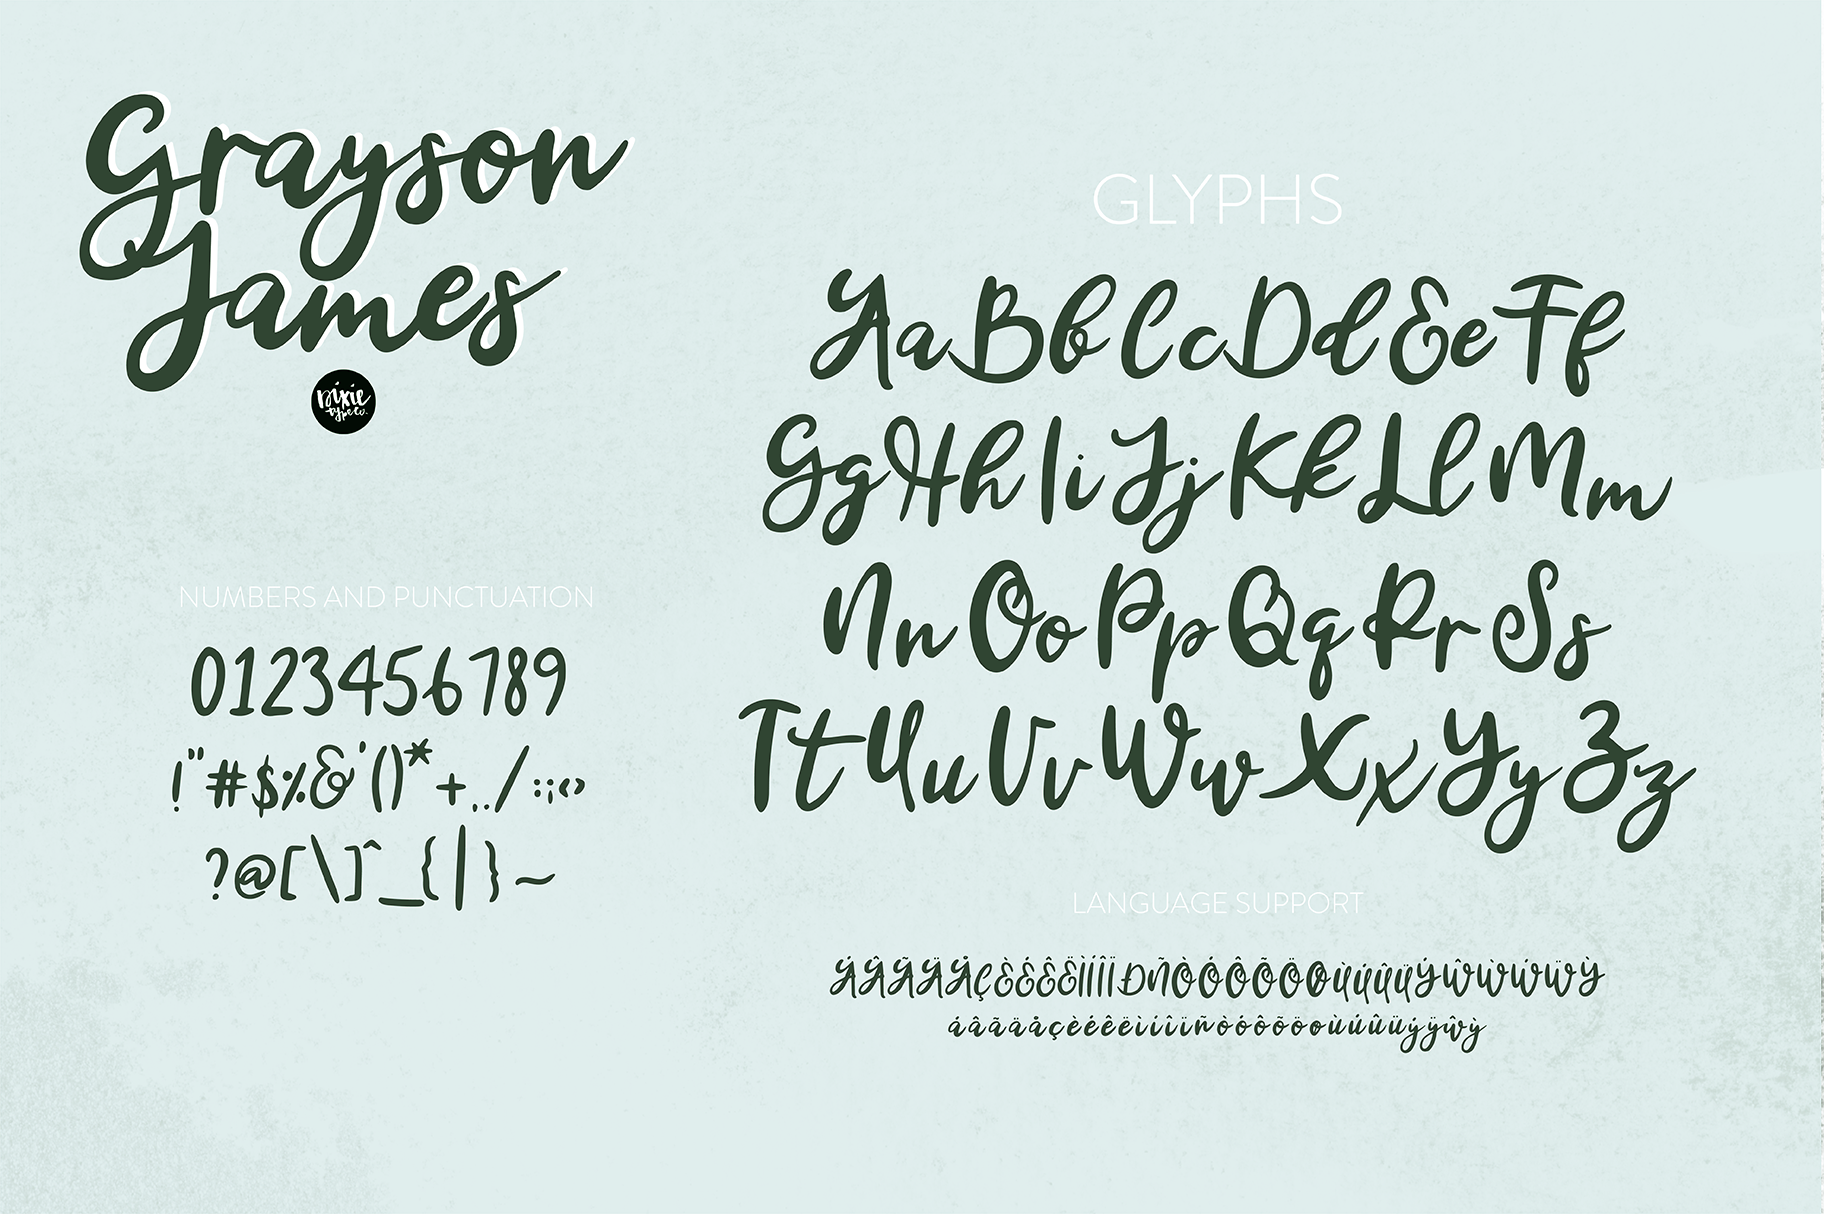 GRAYSON JAMES Bold Italic Hand Lettered Script Font — DIXIE TYPE CO